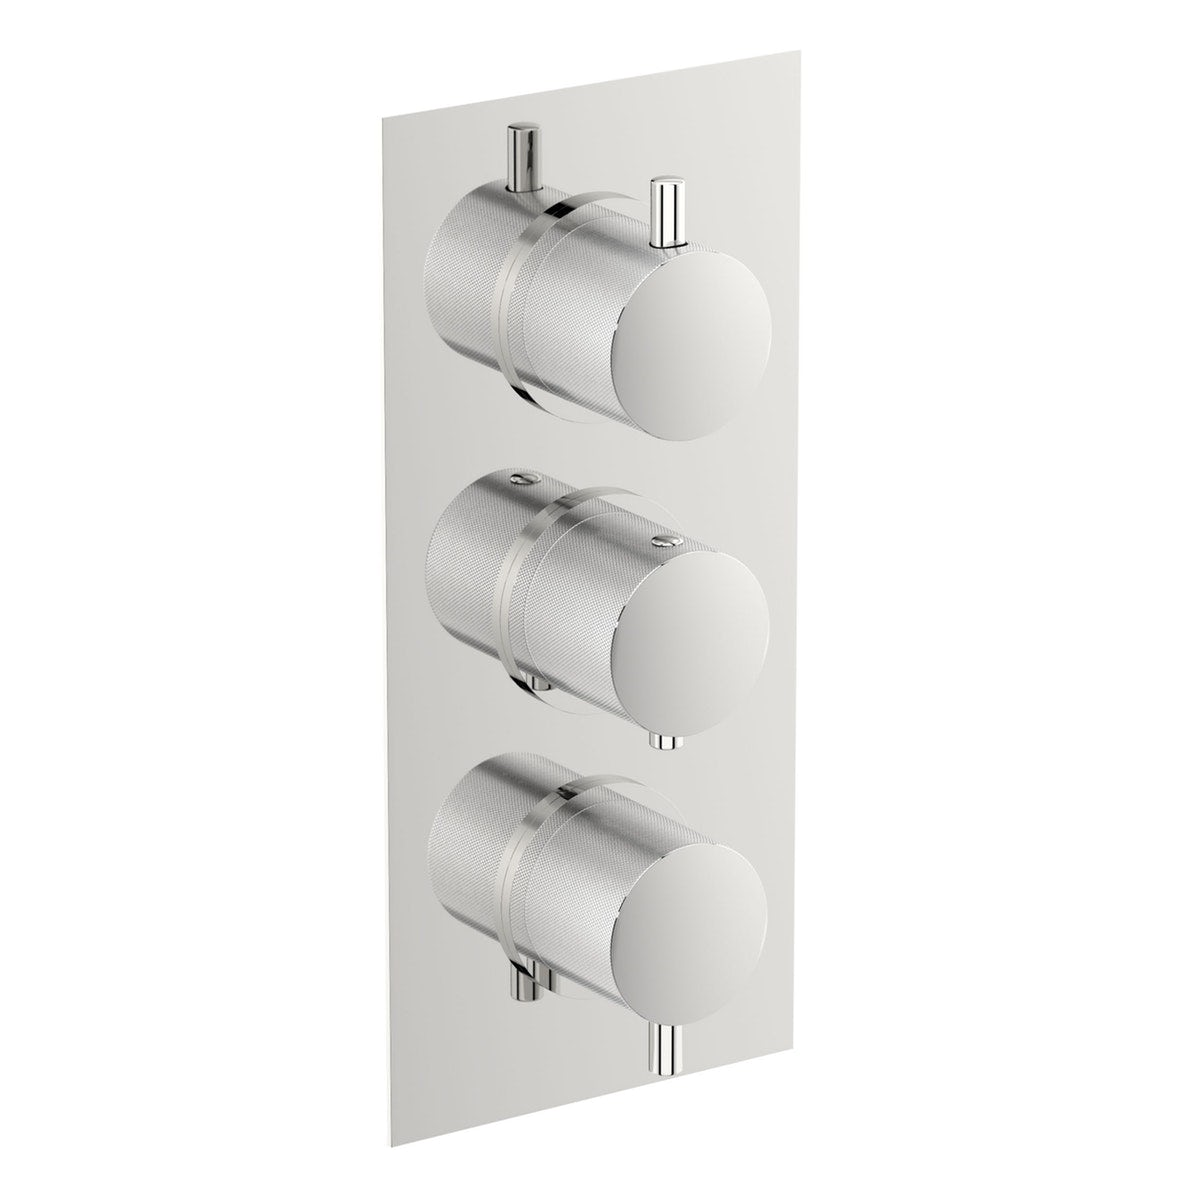 Mode Banks triple thermostatic shower valve offer pack